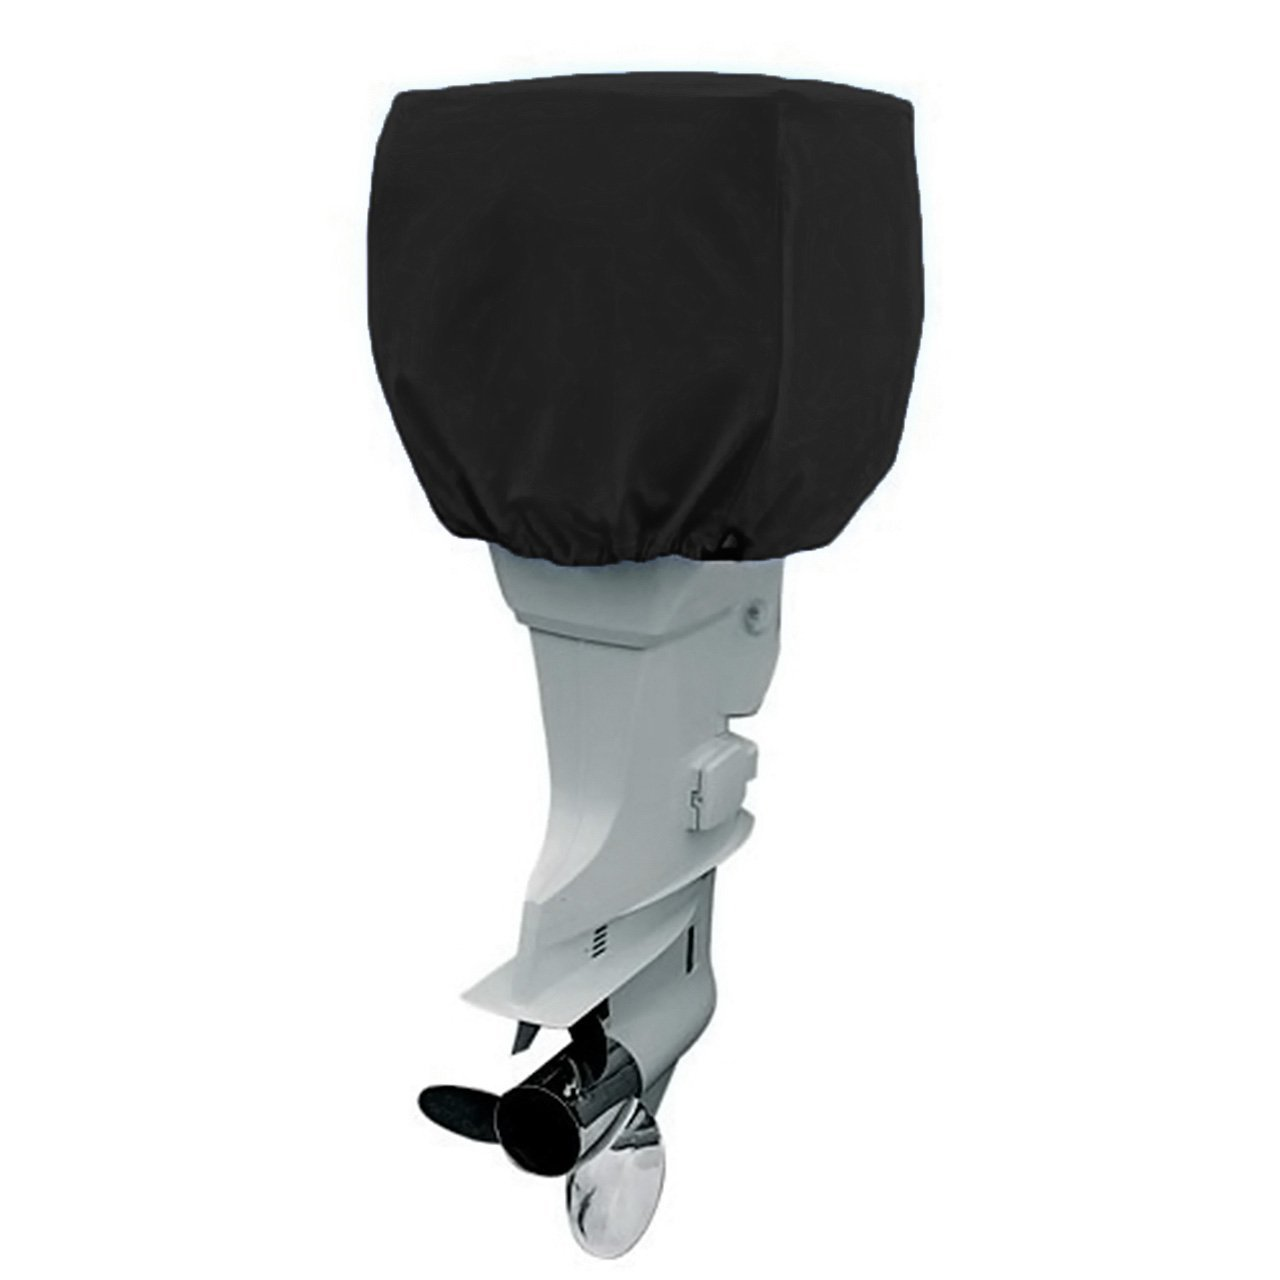 COCO Outboard Motor Cover Waterproof Boat Motor Cover, Outboard Engine Cover Up to 115-225 Horsepower - Trailerable Heavy Duty Water and UV Resistant with Thick (Black,4 Strokes) by COCO